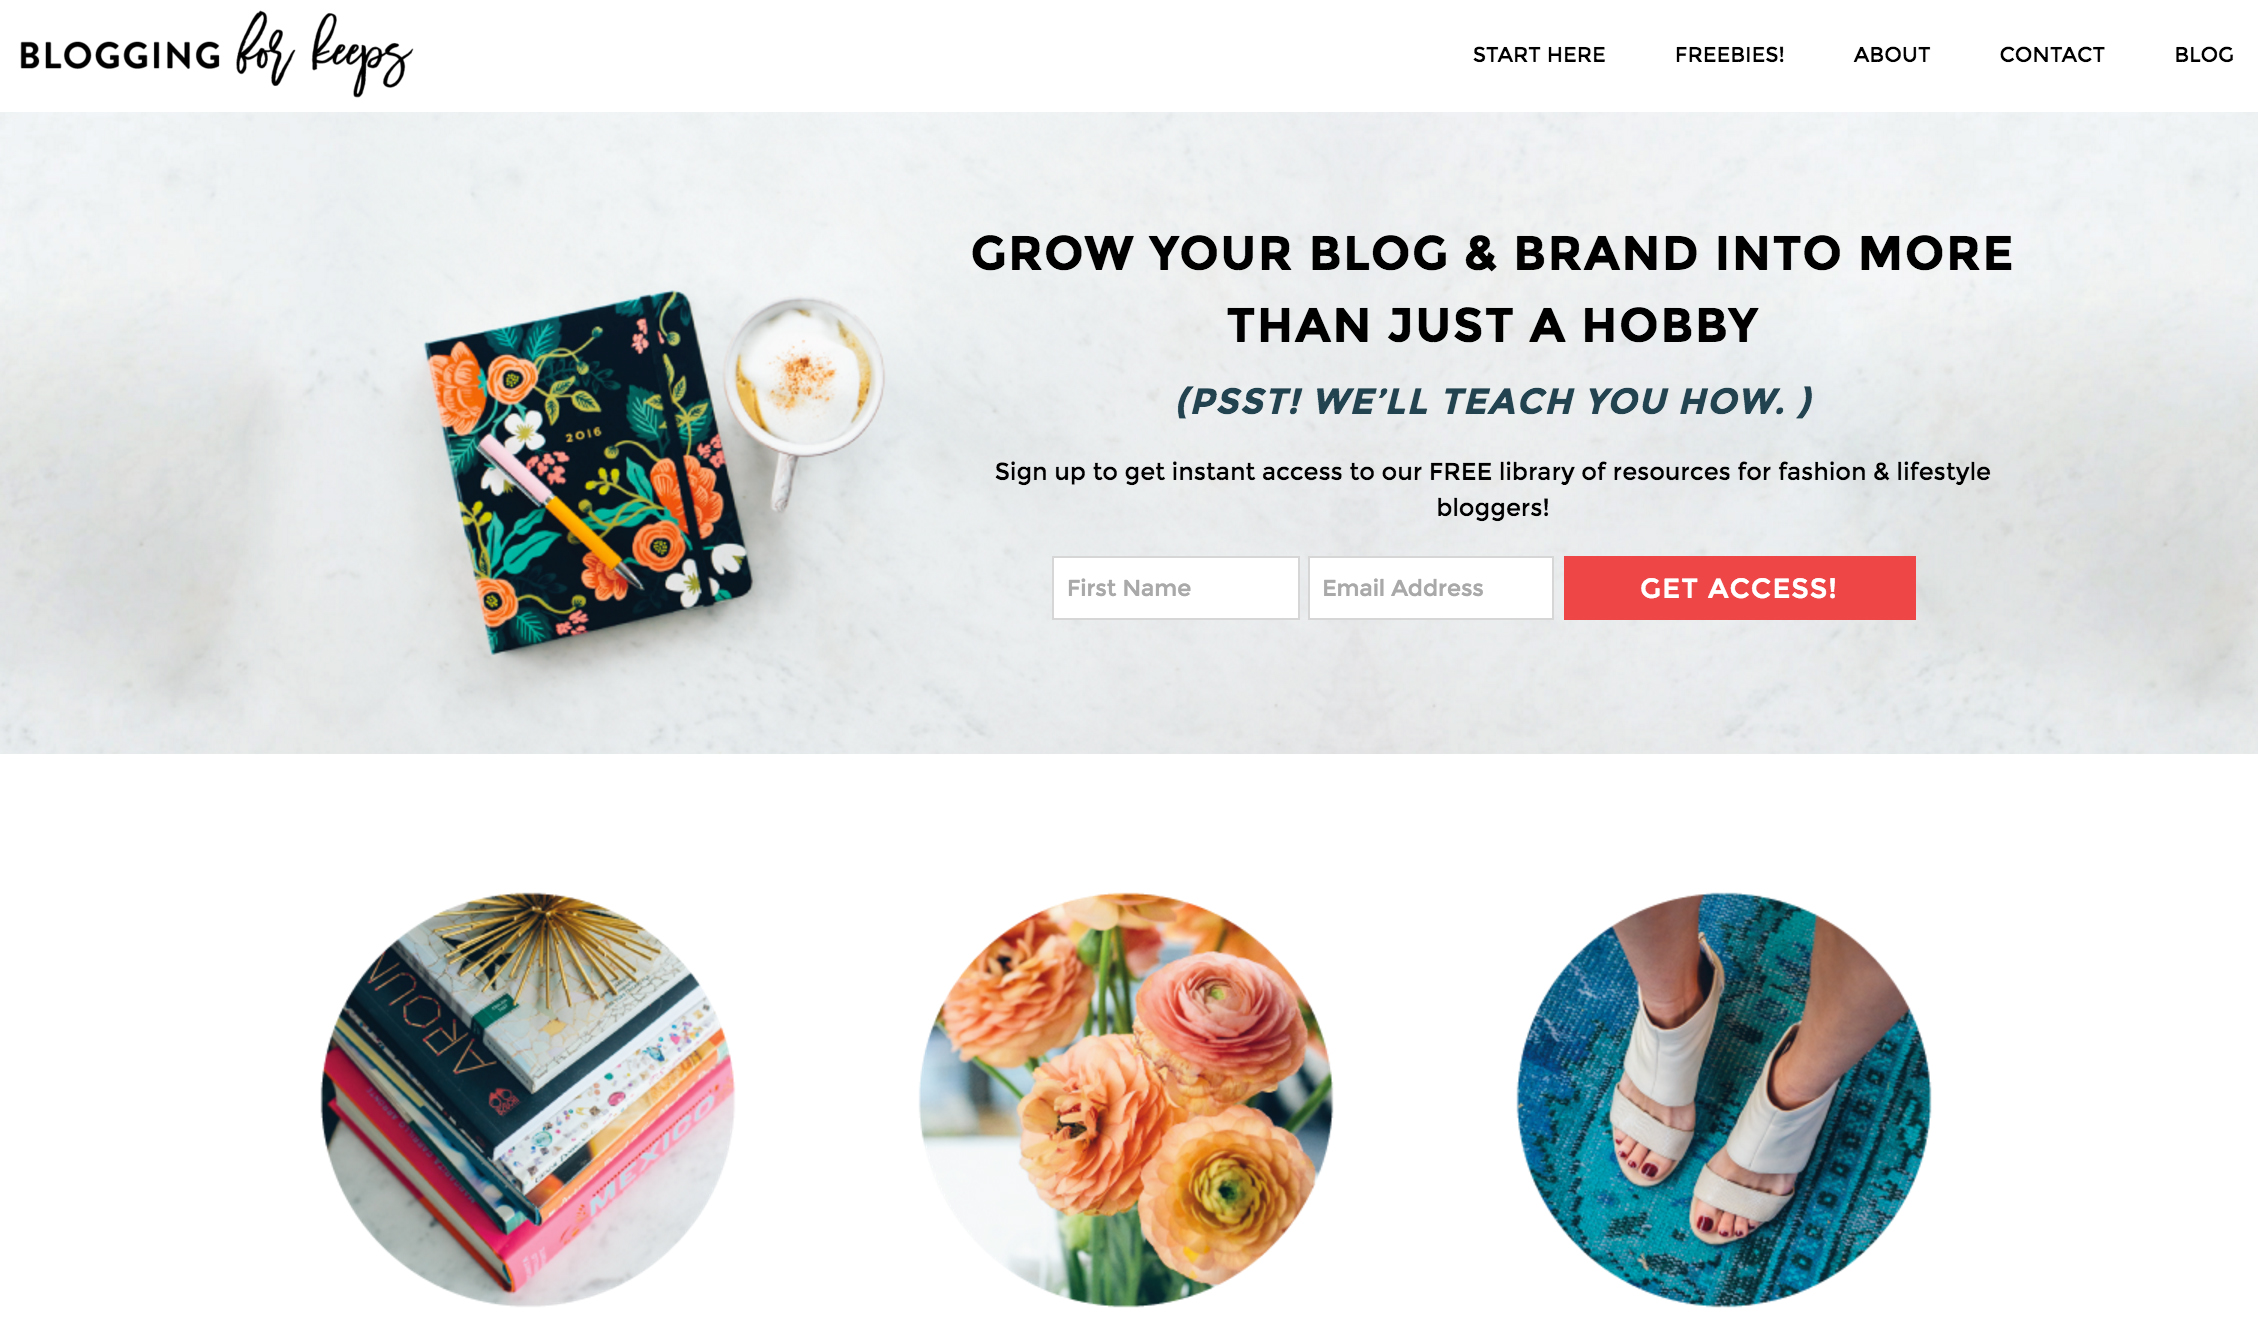 blogging for keeps website